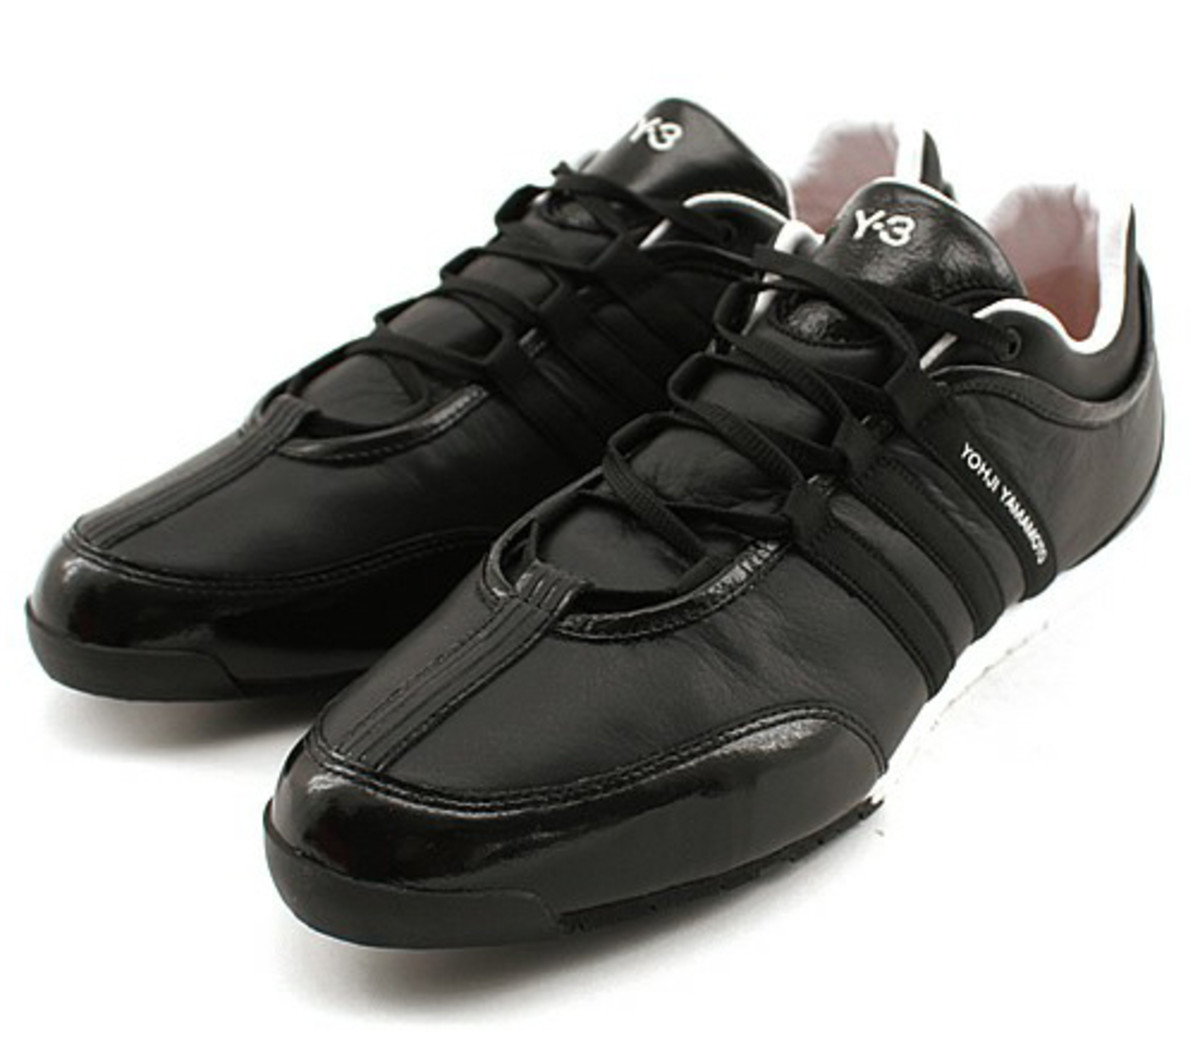 adidas-y-3-spring-summer-2010-boxing-classic-01